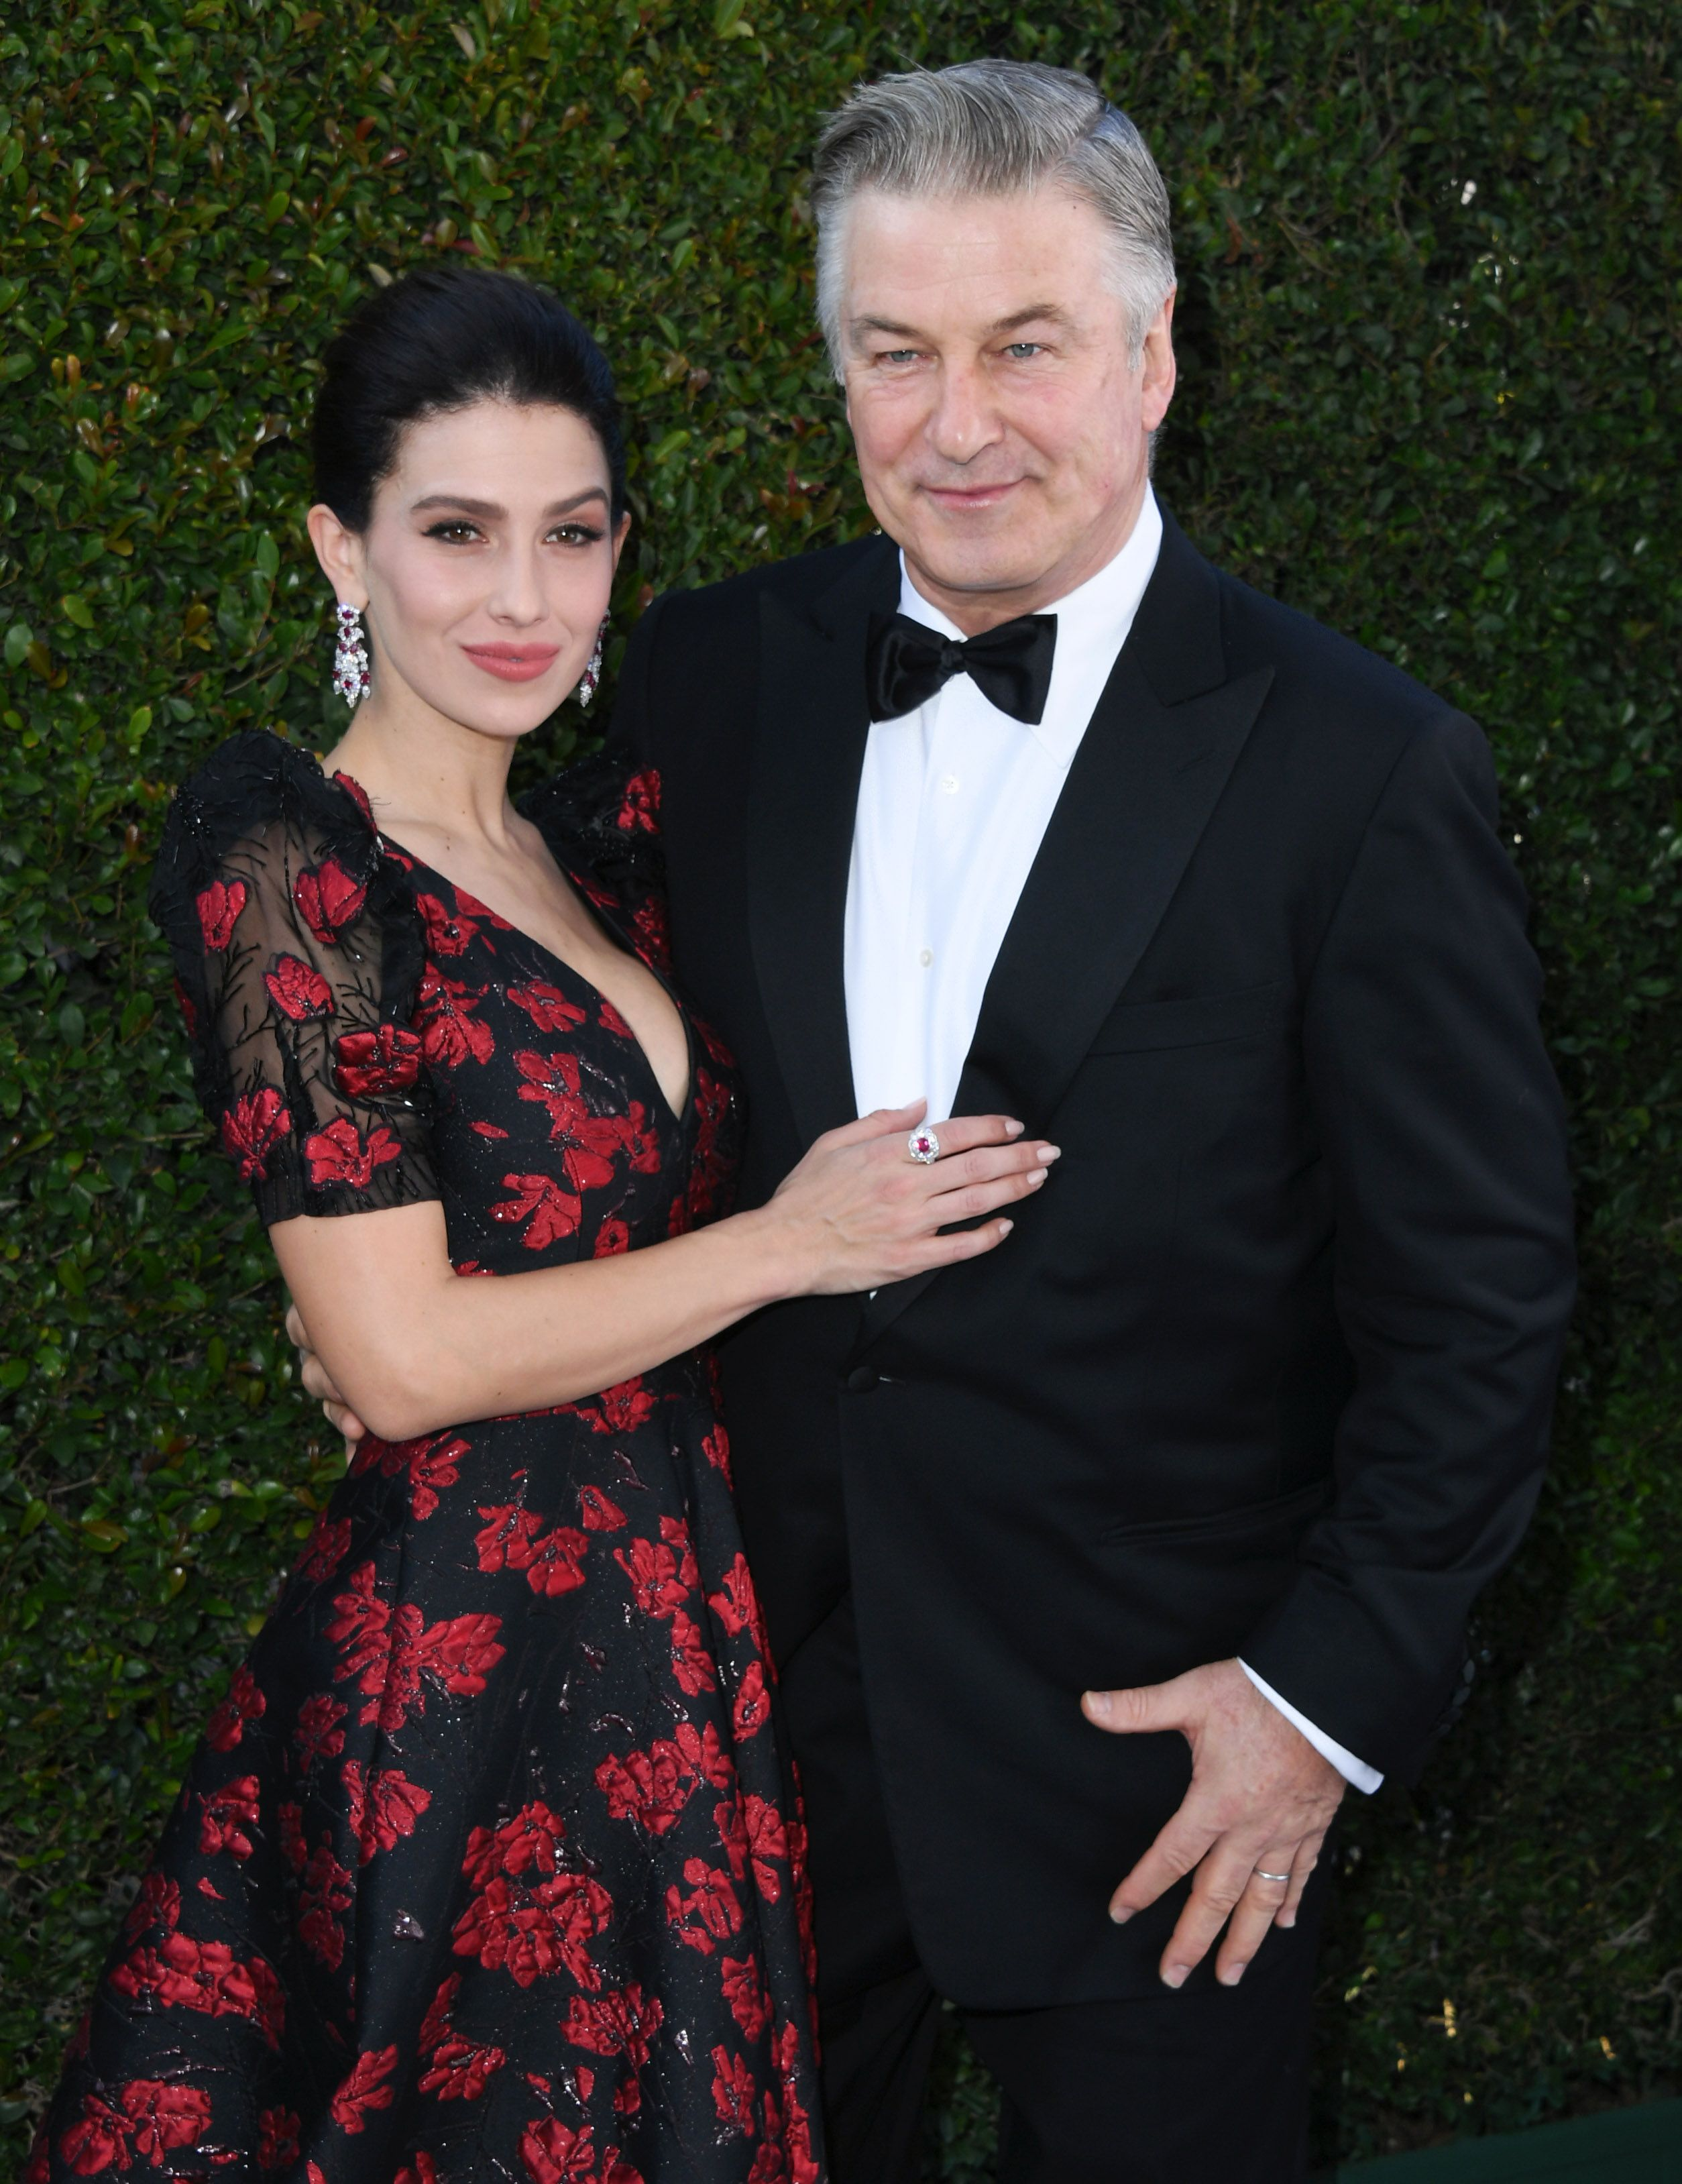 Hilaria Baldwin and Alec Baldwin at 25th Annual Screen Actors Guild Awards at The Shrine Auditorium on January 27, 2019 | Photo: Getty Images